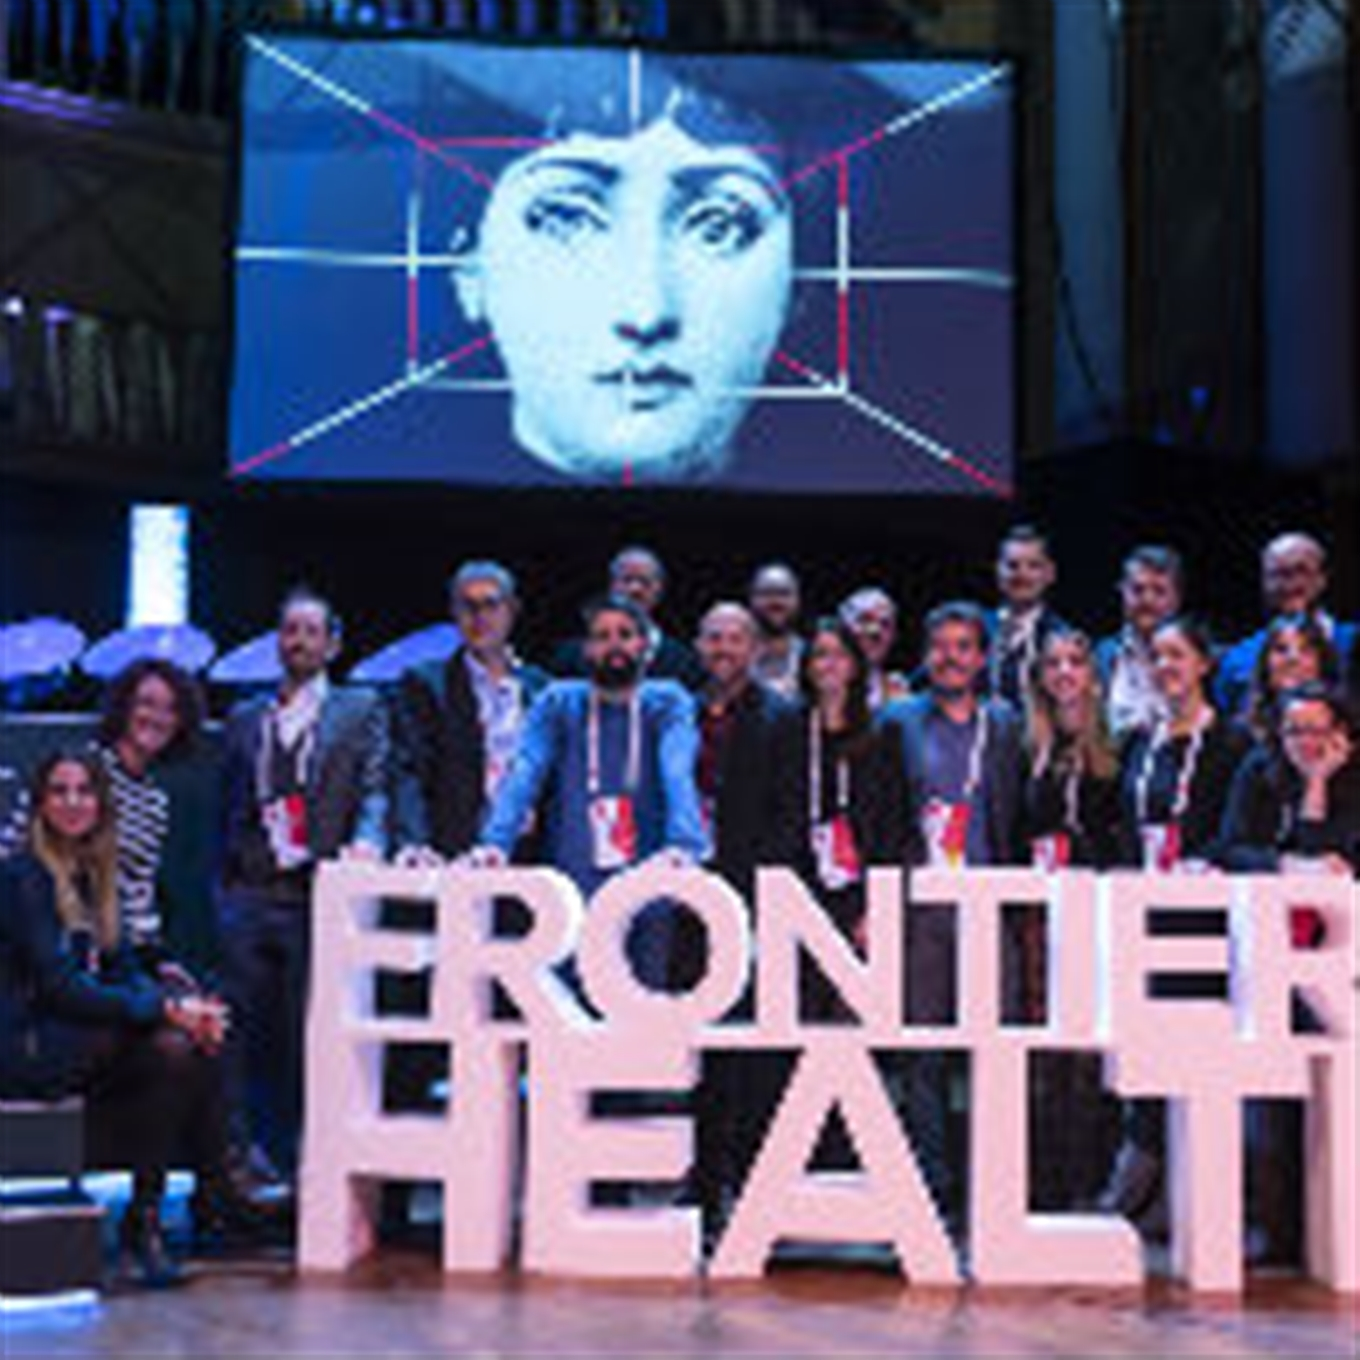 From Frontiers Health to JPM: Reflection on 2019 Priorities